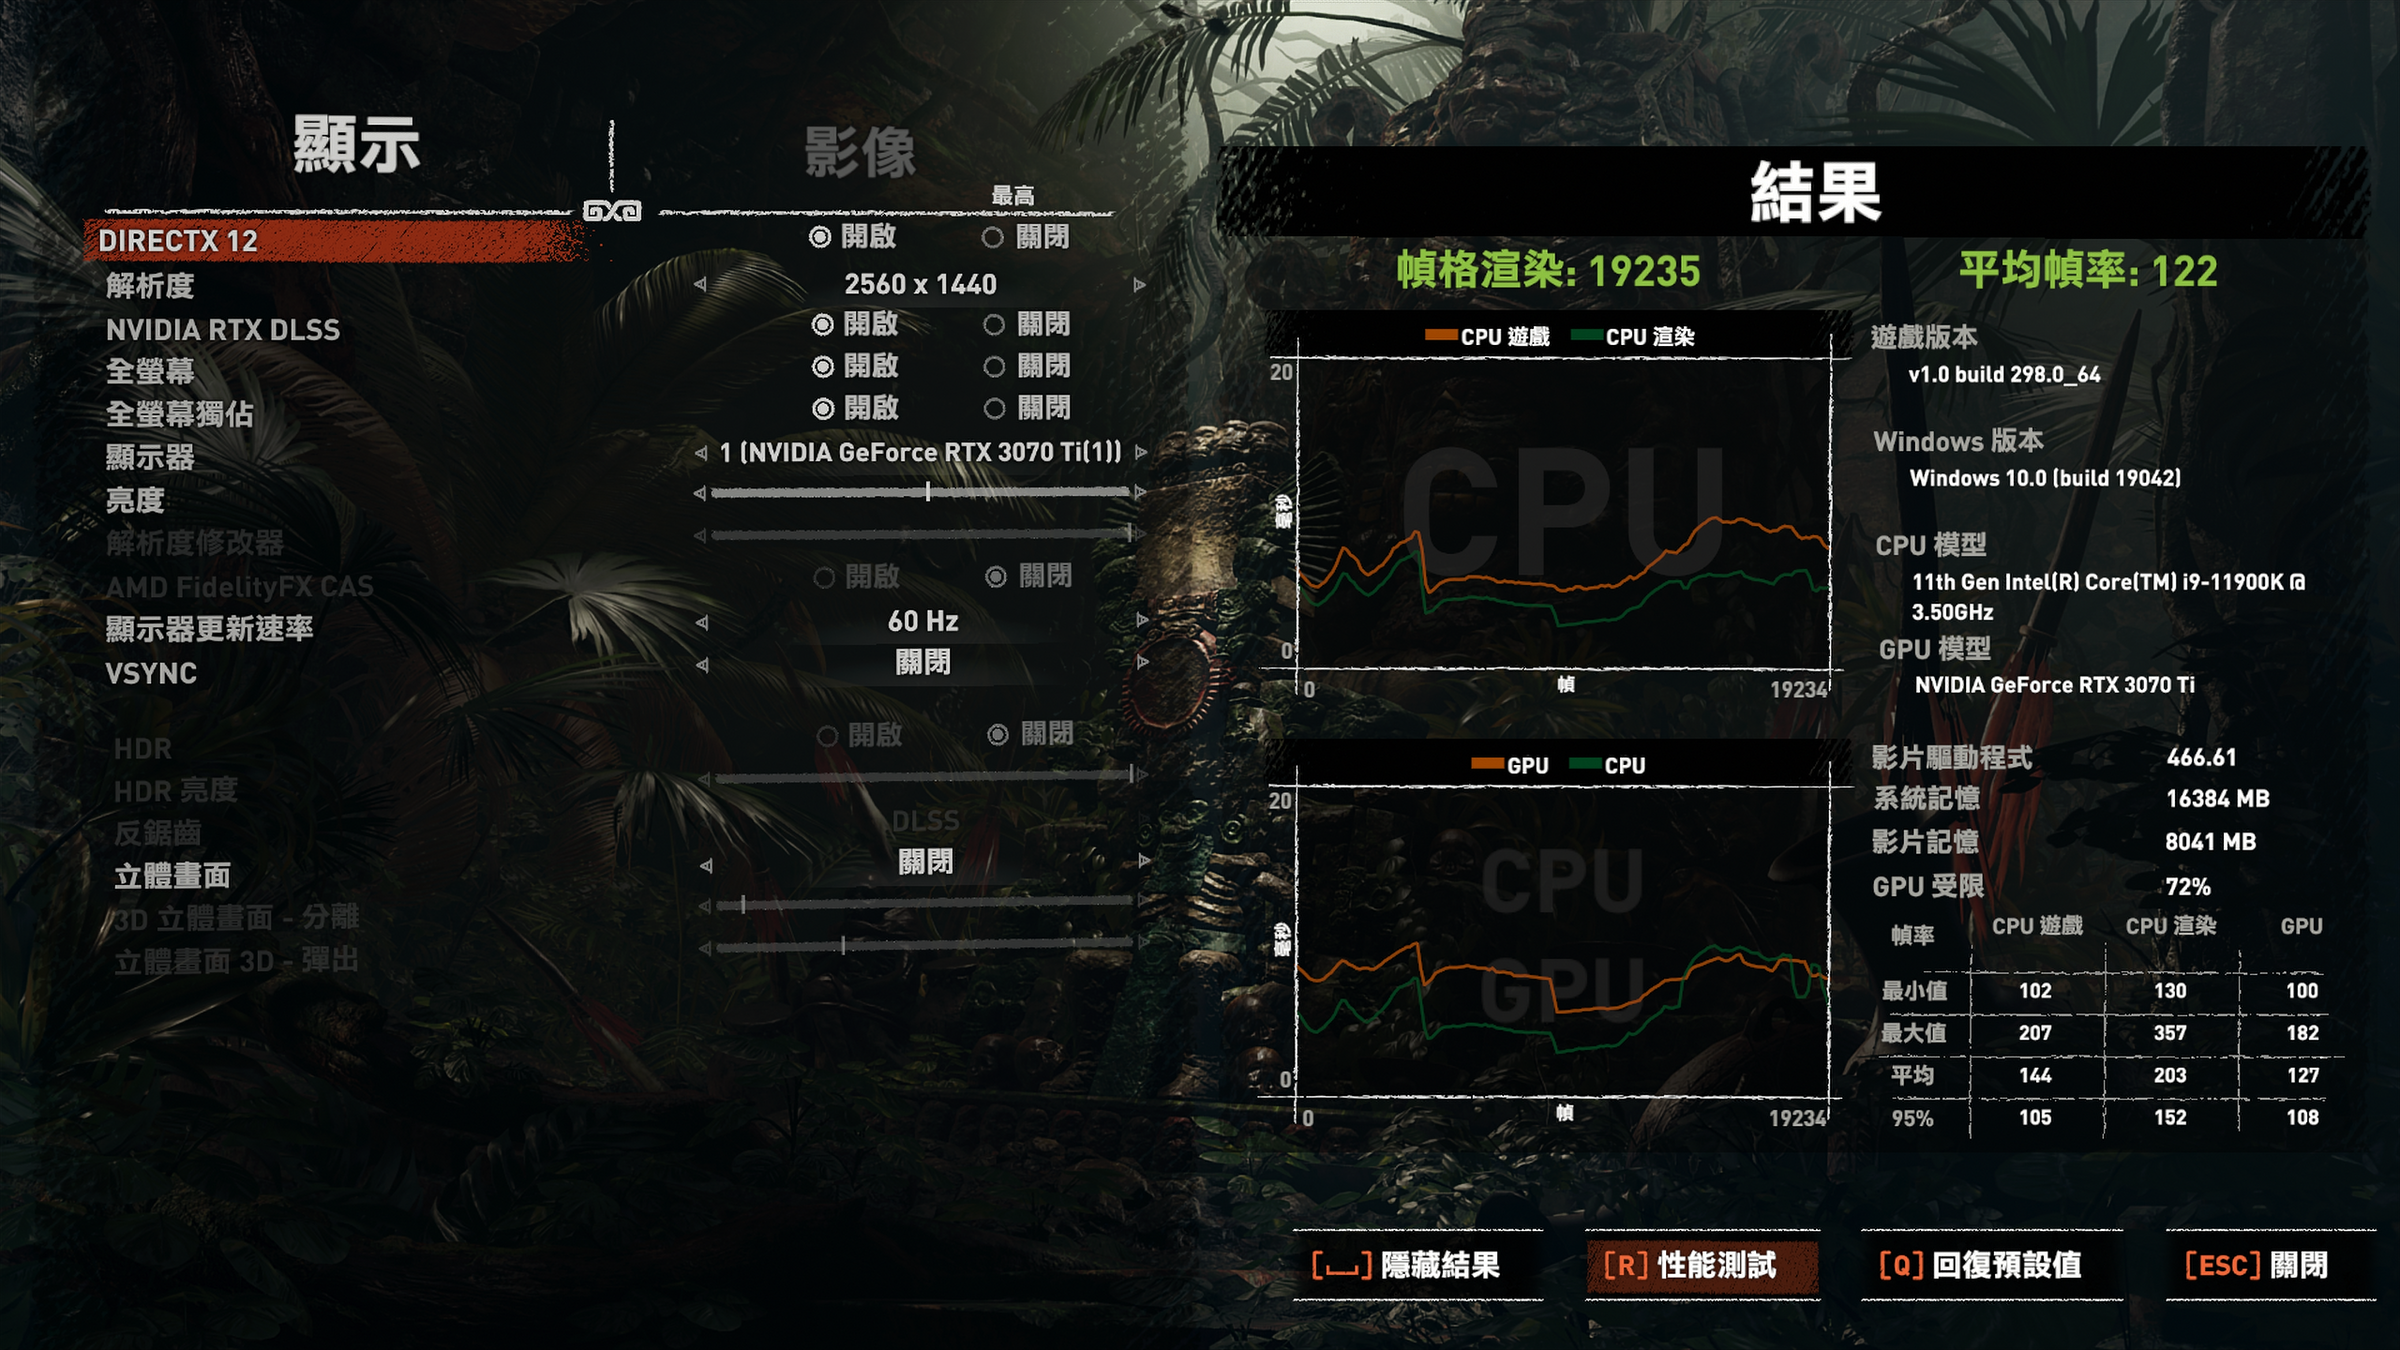 The photos mentioned display, images, results, including graphics cards, central processing units, computers, NVIDIA GeForce RTX, Intel